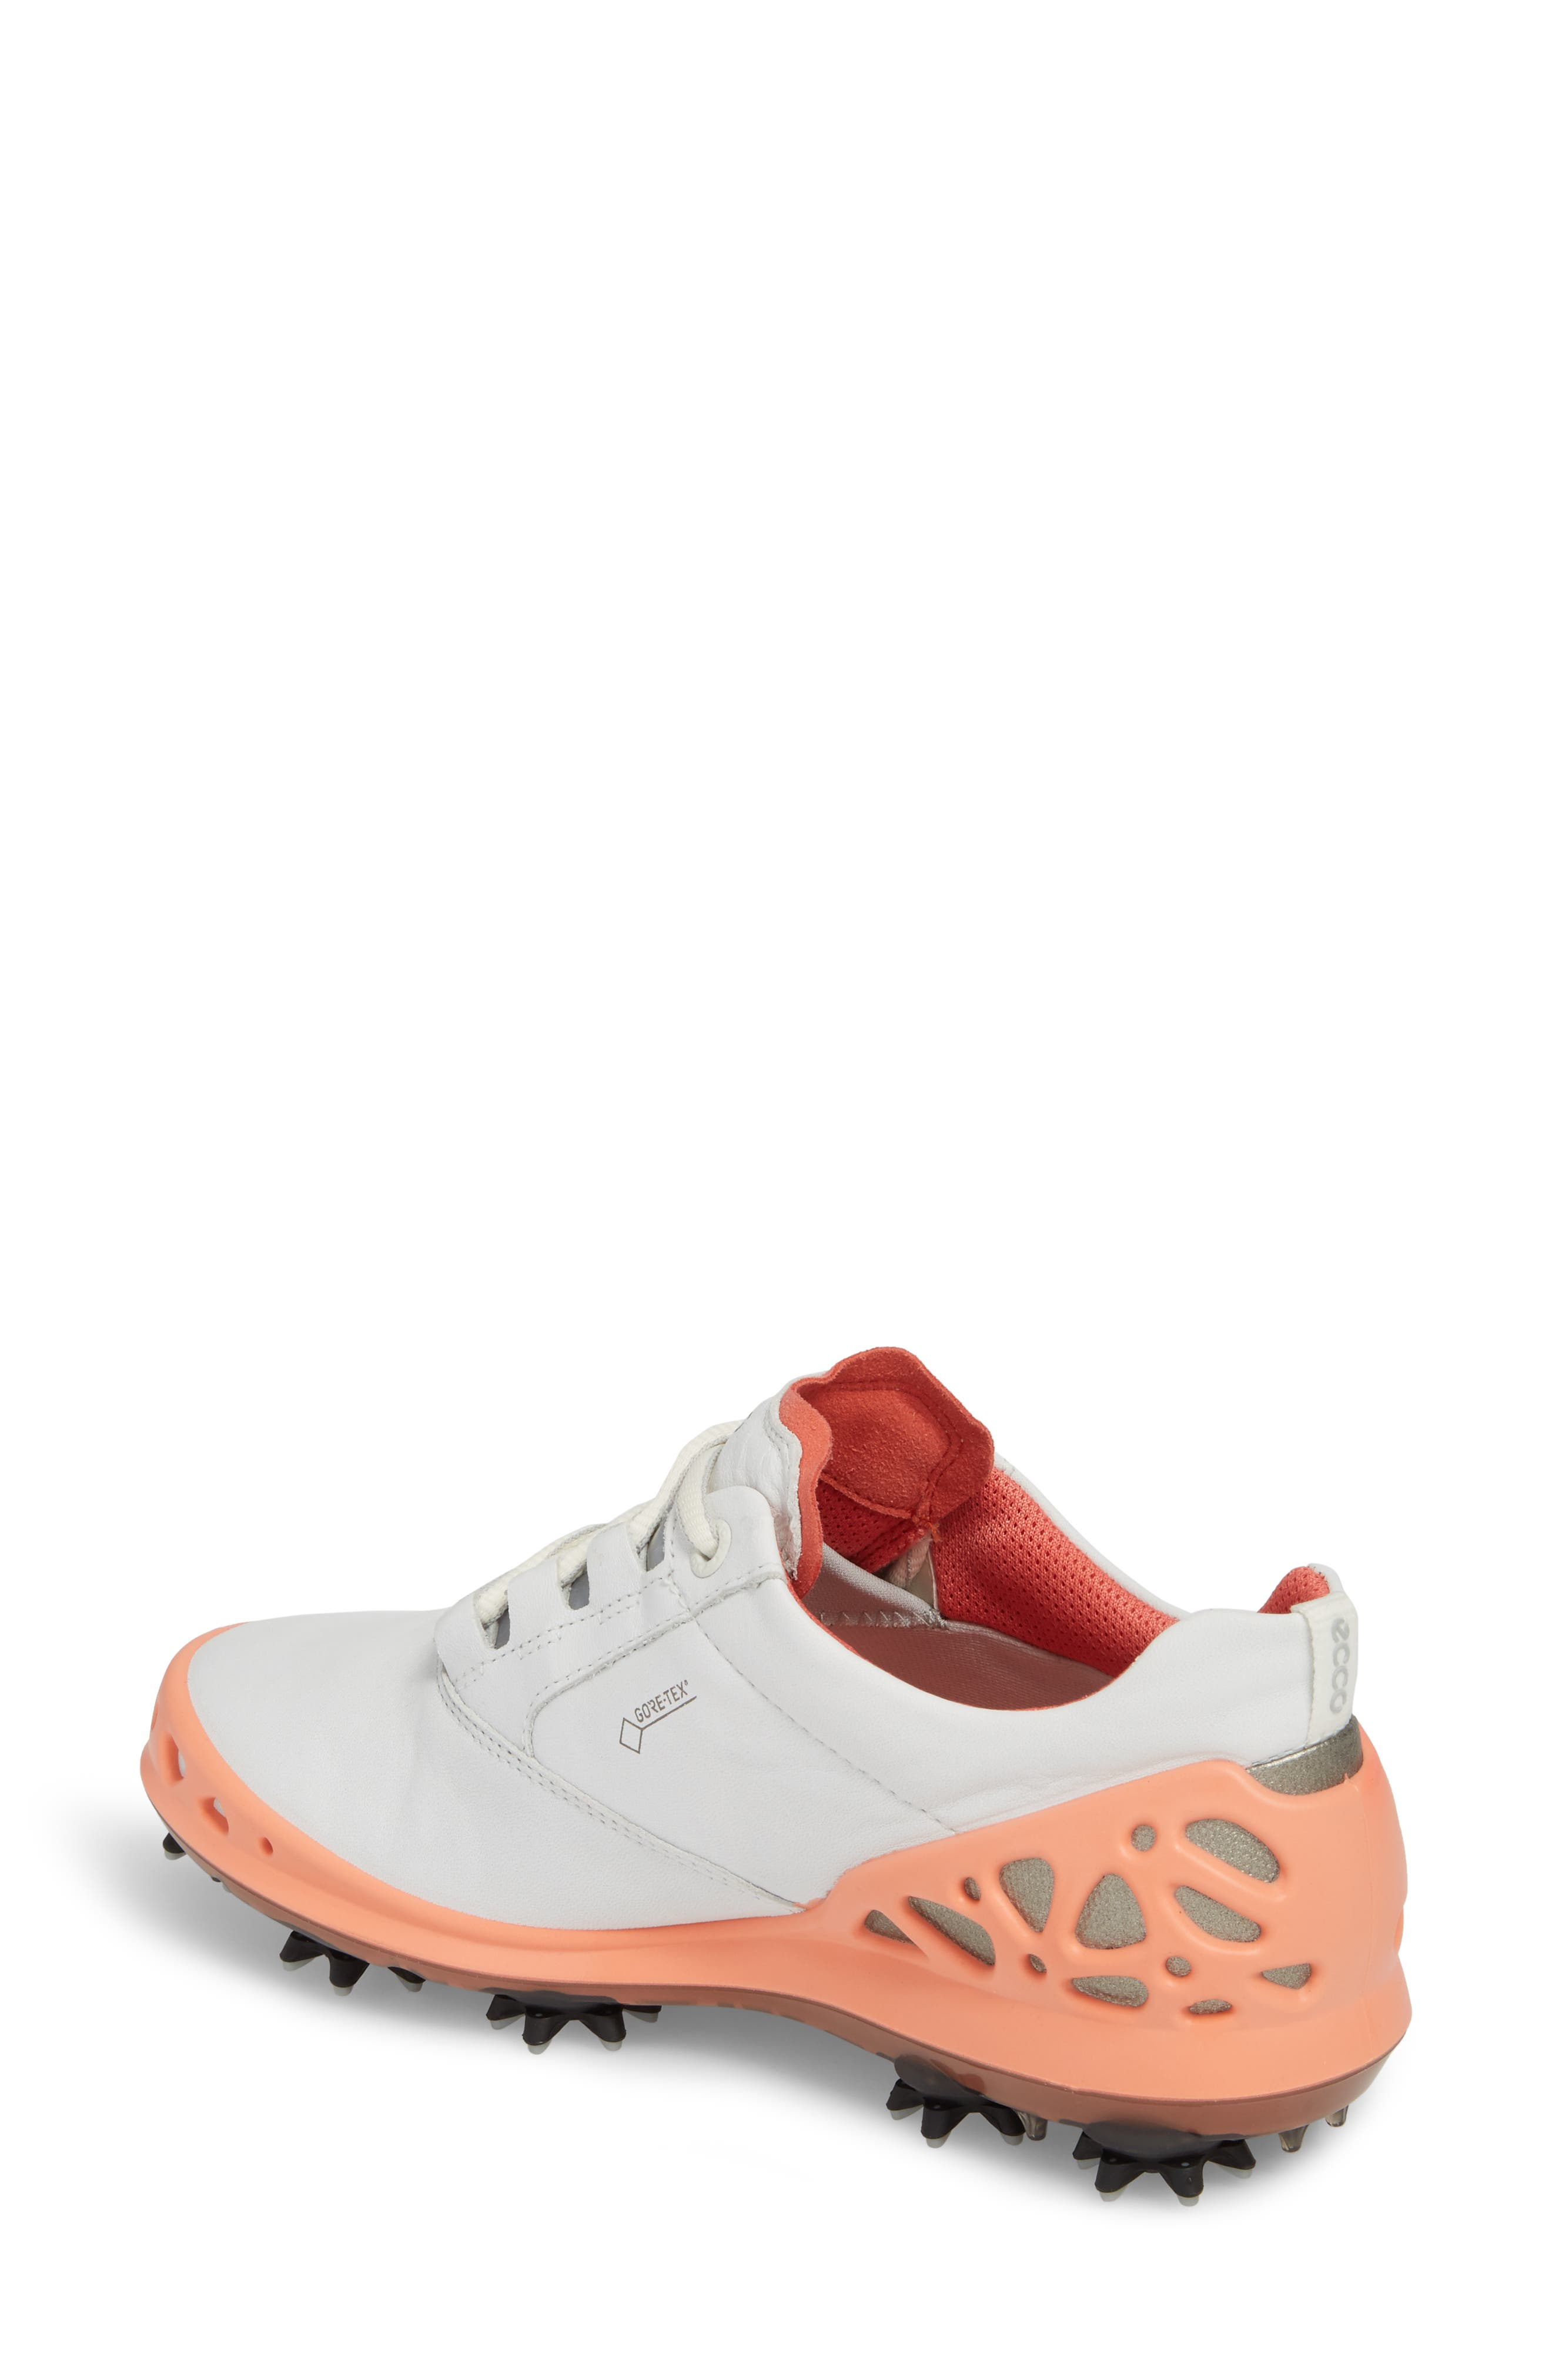 Cage Gore-Tex<sup>®</sup> Golf Shoe,                             Alternate thumbnail 2, color,                             White/ Coral Leather